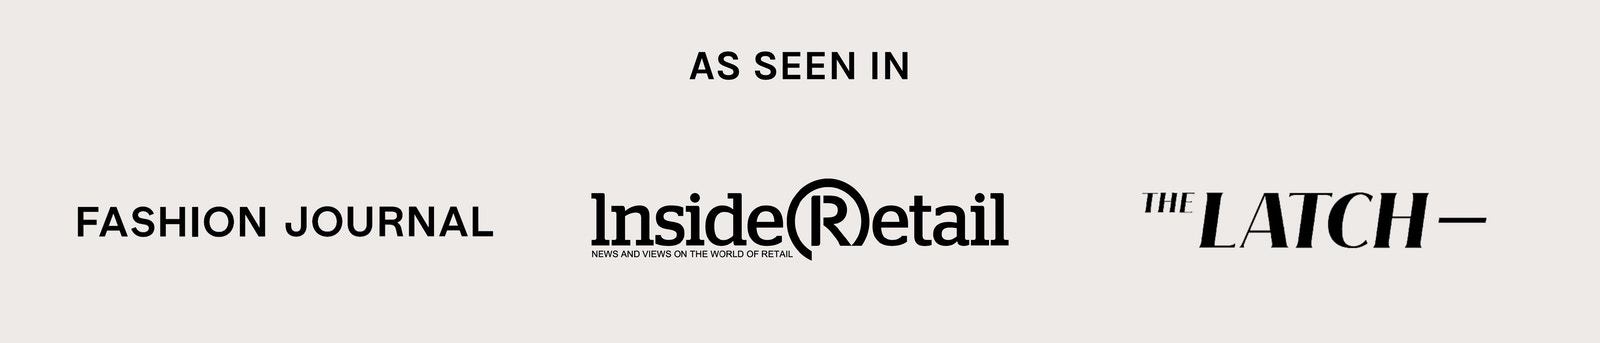 As Seen In: Fashion Journal, Inside Retail, The Latch